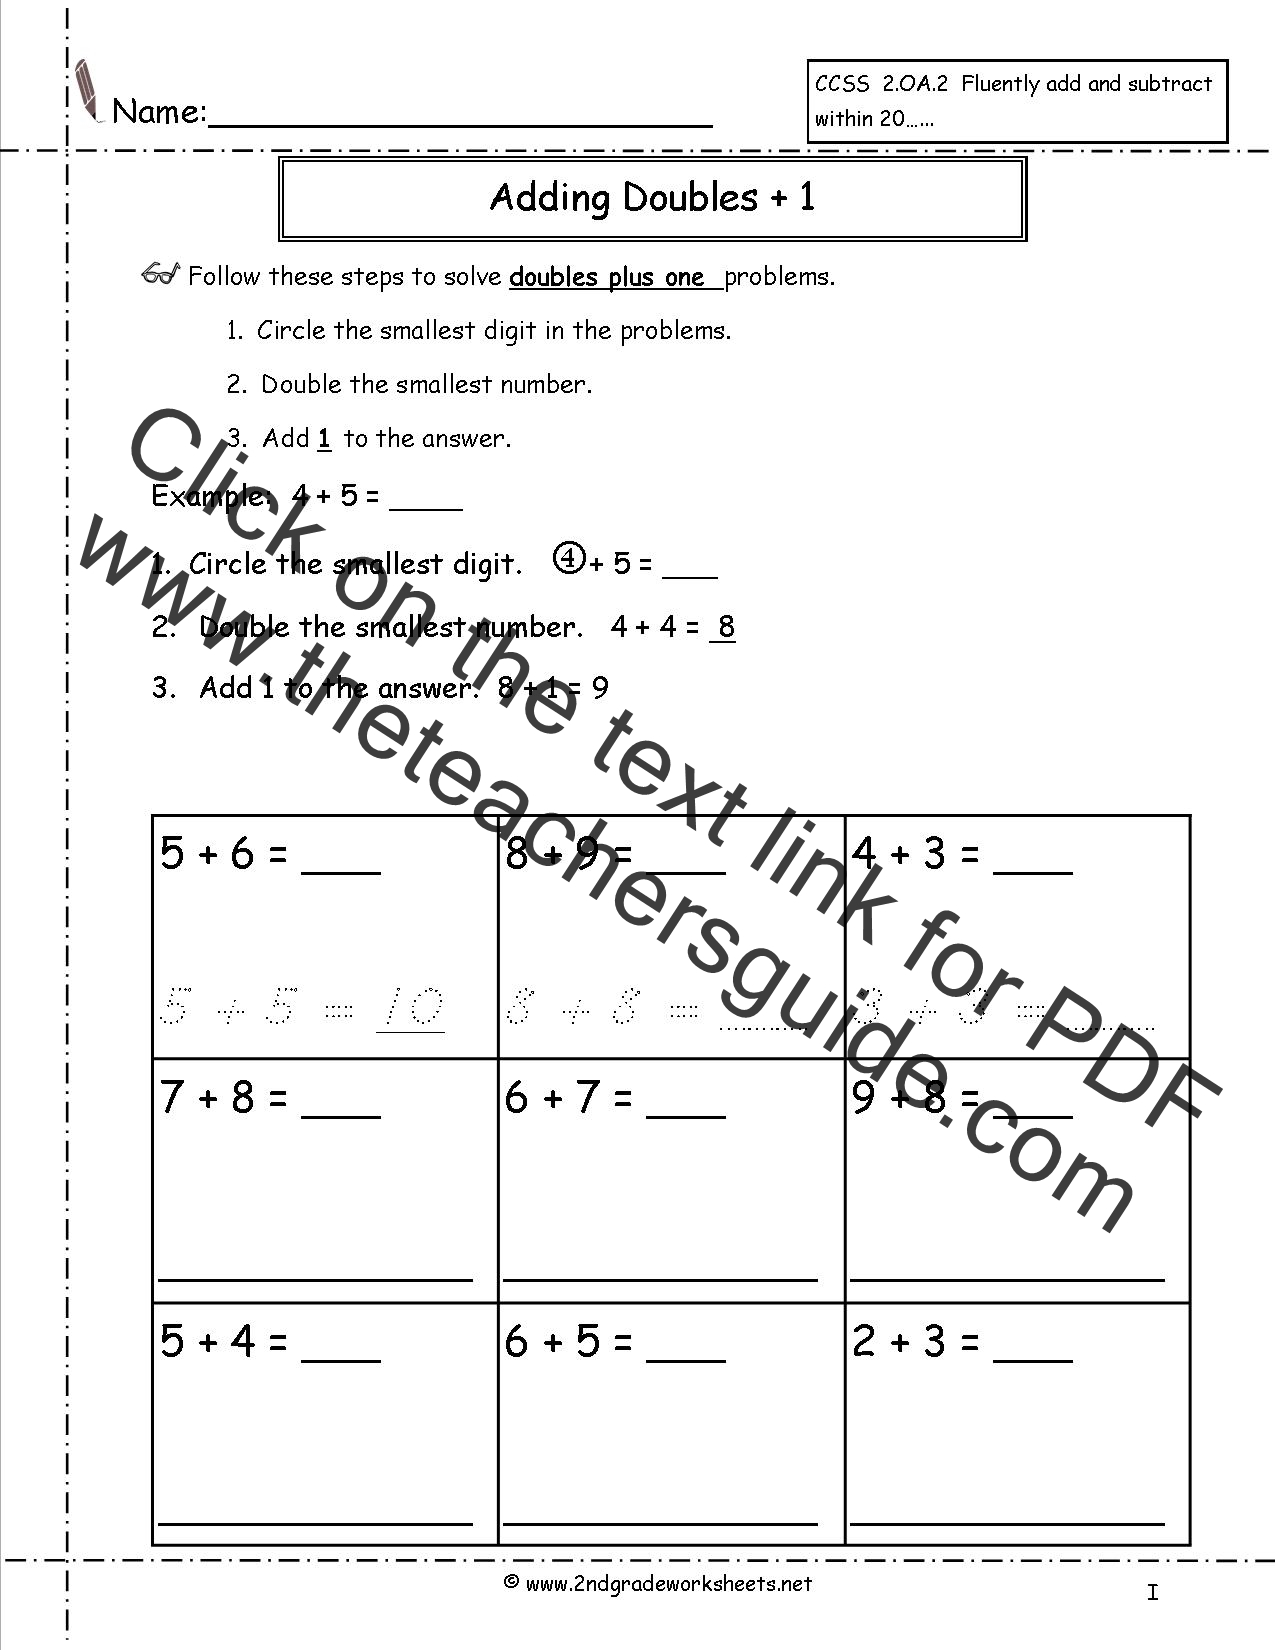 worksheet Addition Doubles free single digit addition worksheets doubles plus one intro facts worksheet